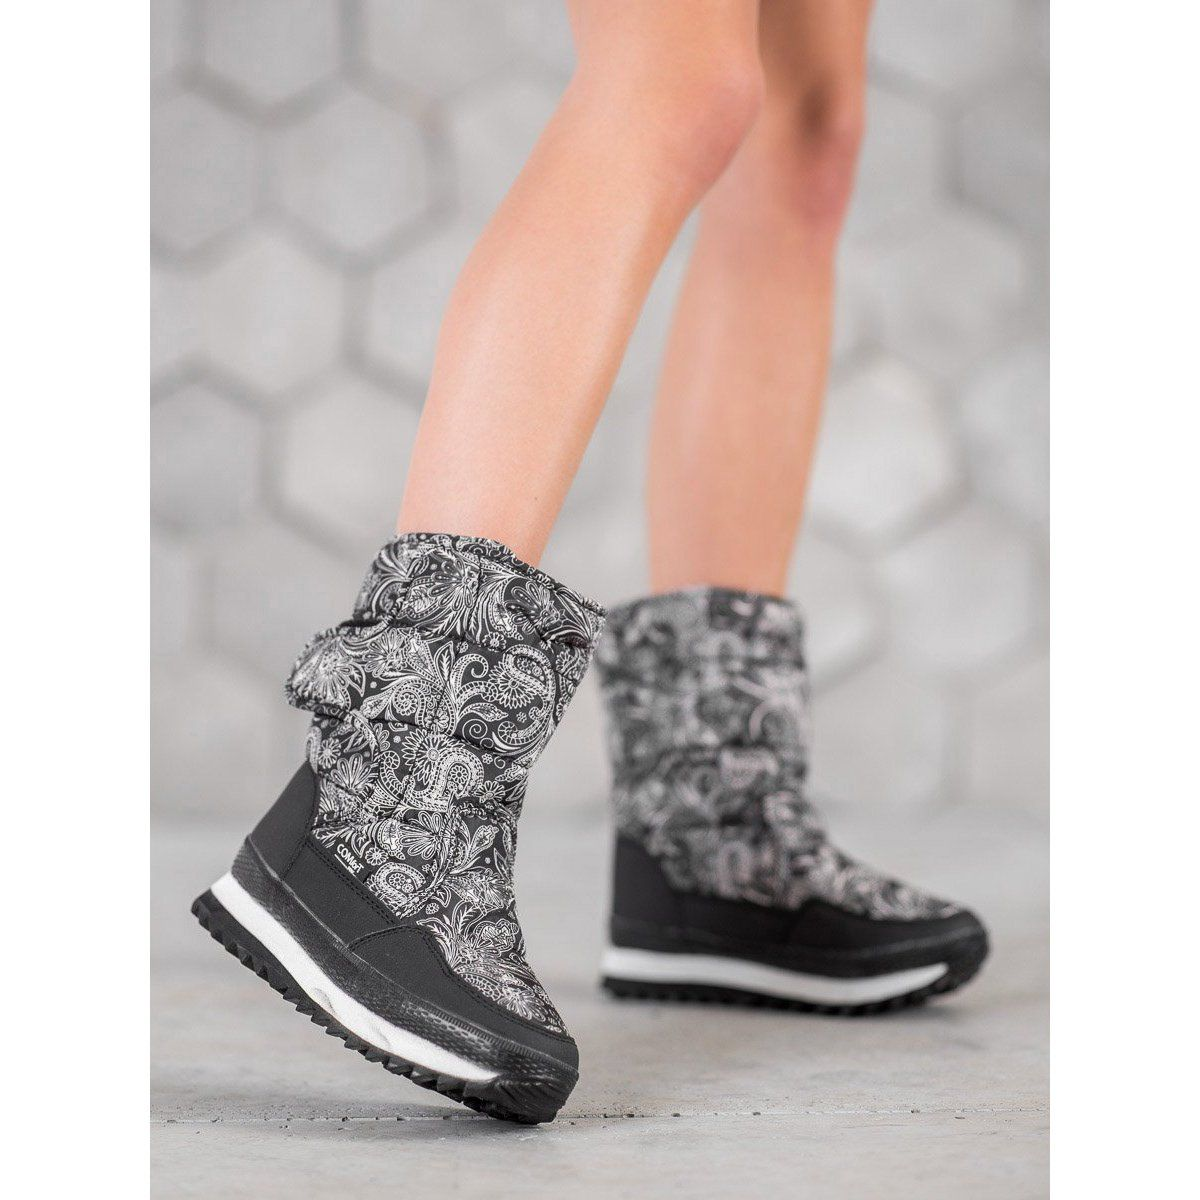 Shelovet Sniegowce Na Zime Czarne Boots High Top Sneakers Top Sneakers